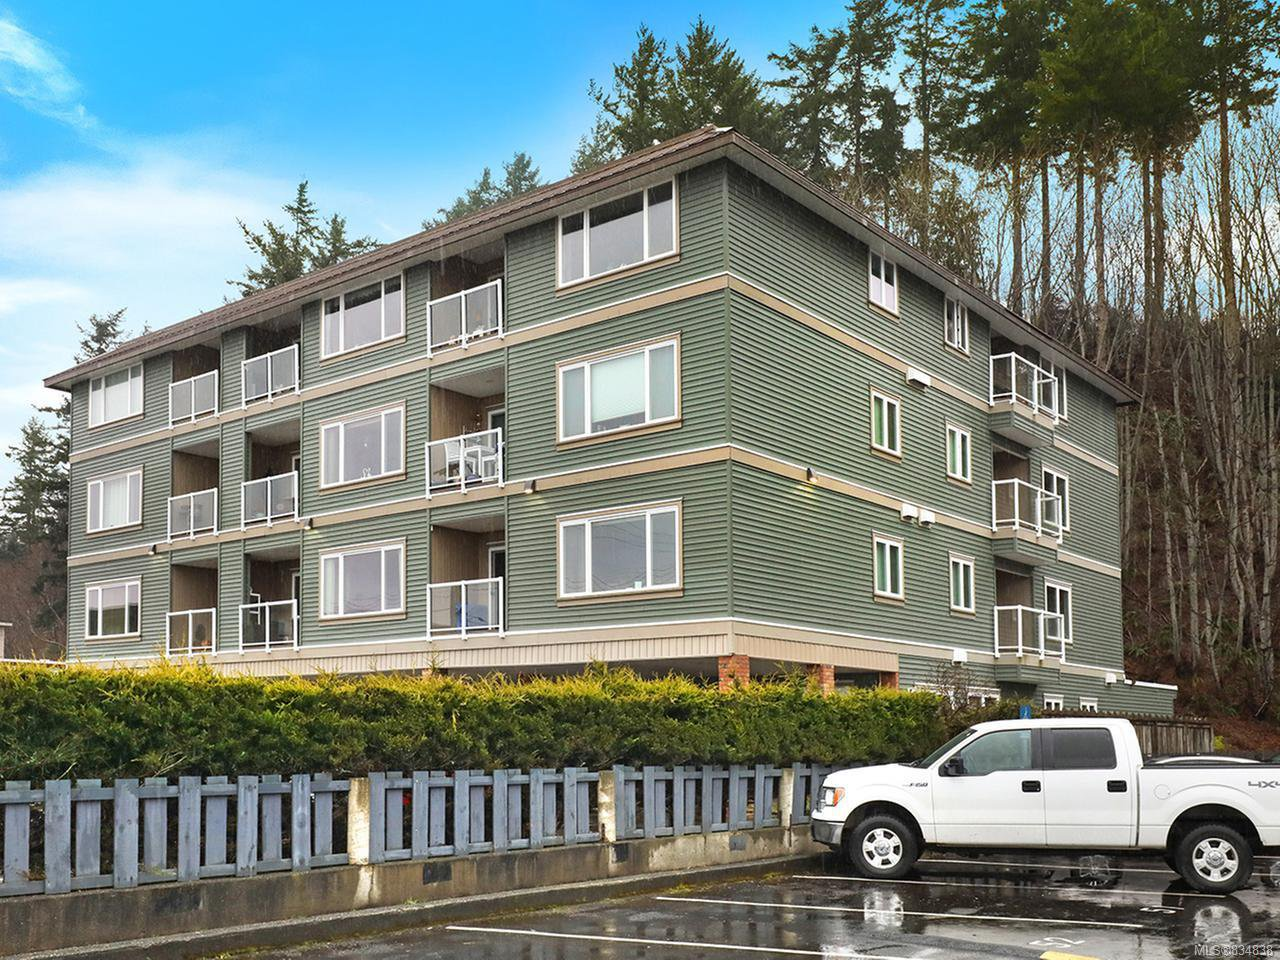 Photo 3: Photos: 301 894 S Island Hwy in CAMPBELL RIVER: CR Campbell River Central Condo for sale (Campbell River)  : MLS®# 834838